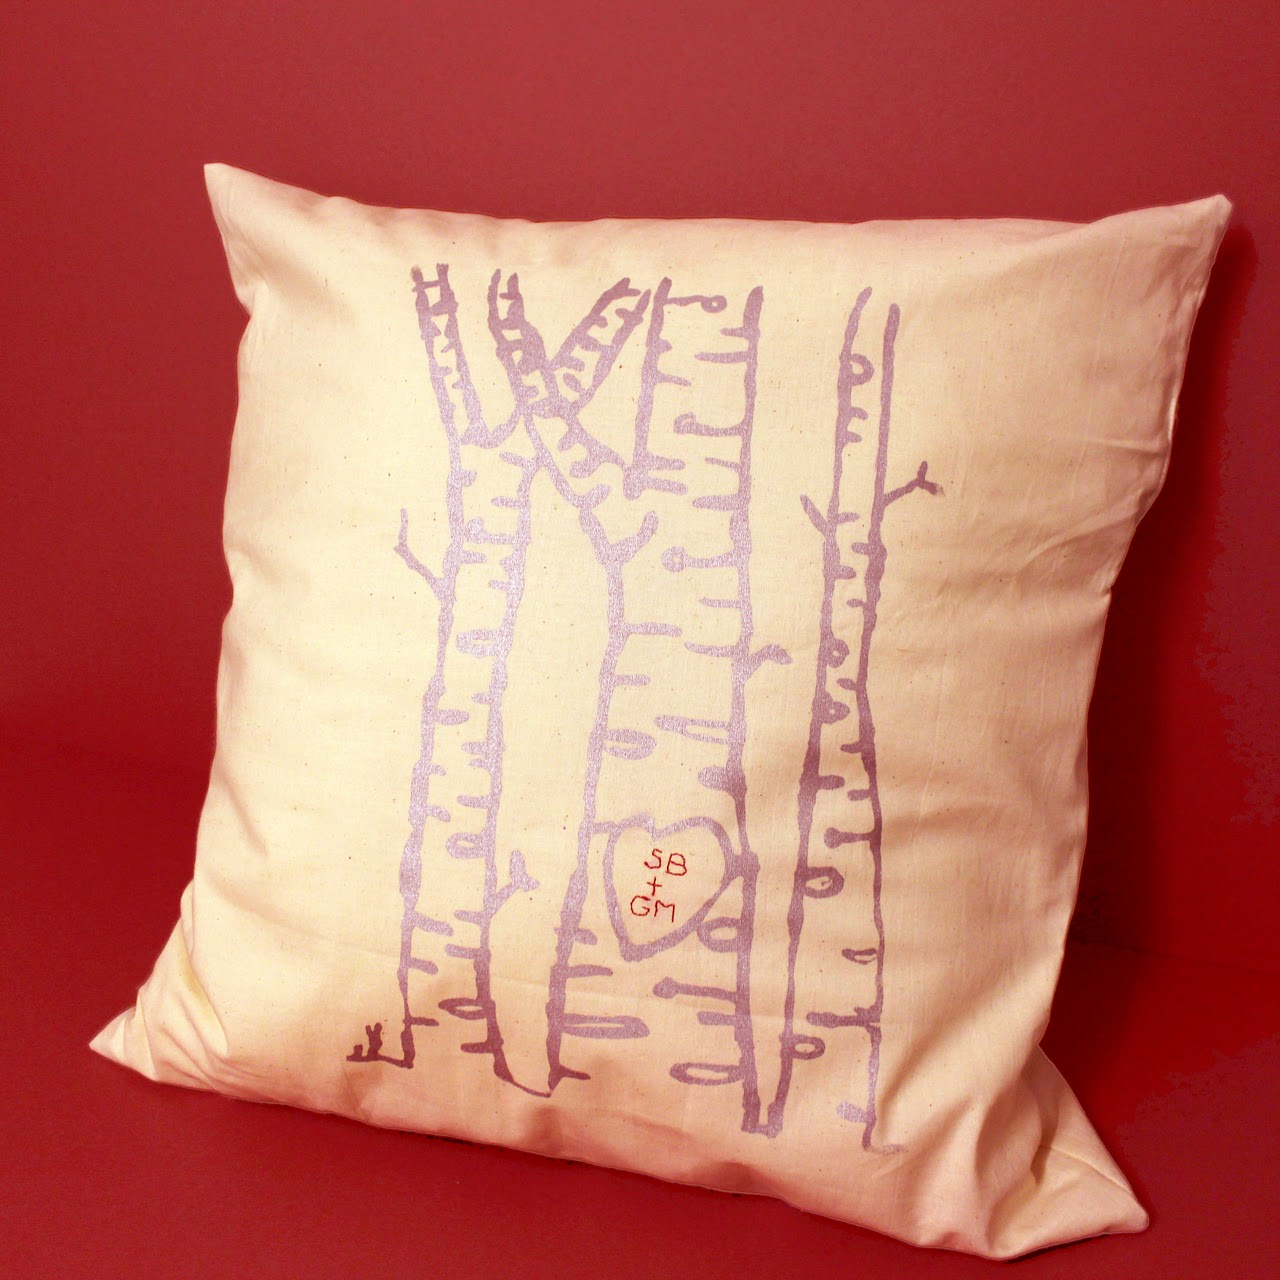 http://www.2greenmonkeys.co.uk/tree-initials-cushion/